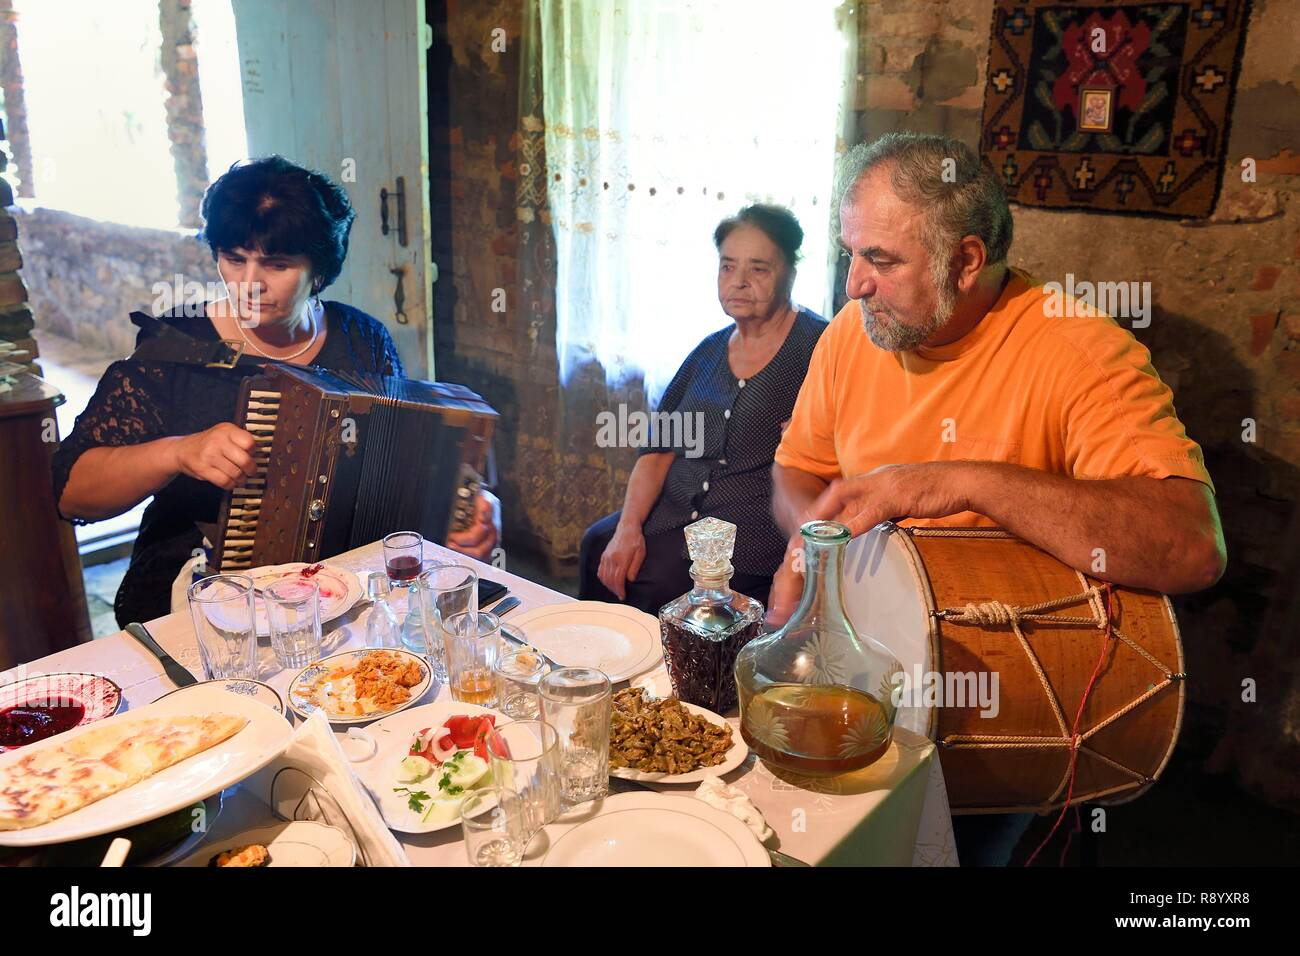 Georgia, Kakheti, Akhmeta, traditional festive meal in a Tusheti family, songs accompanied by accordion and drum - Stock Image